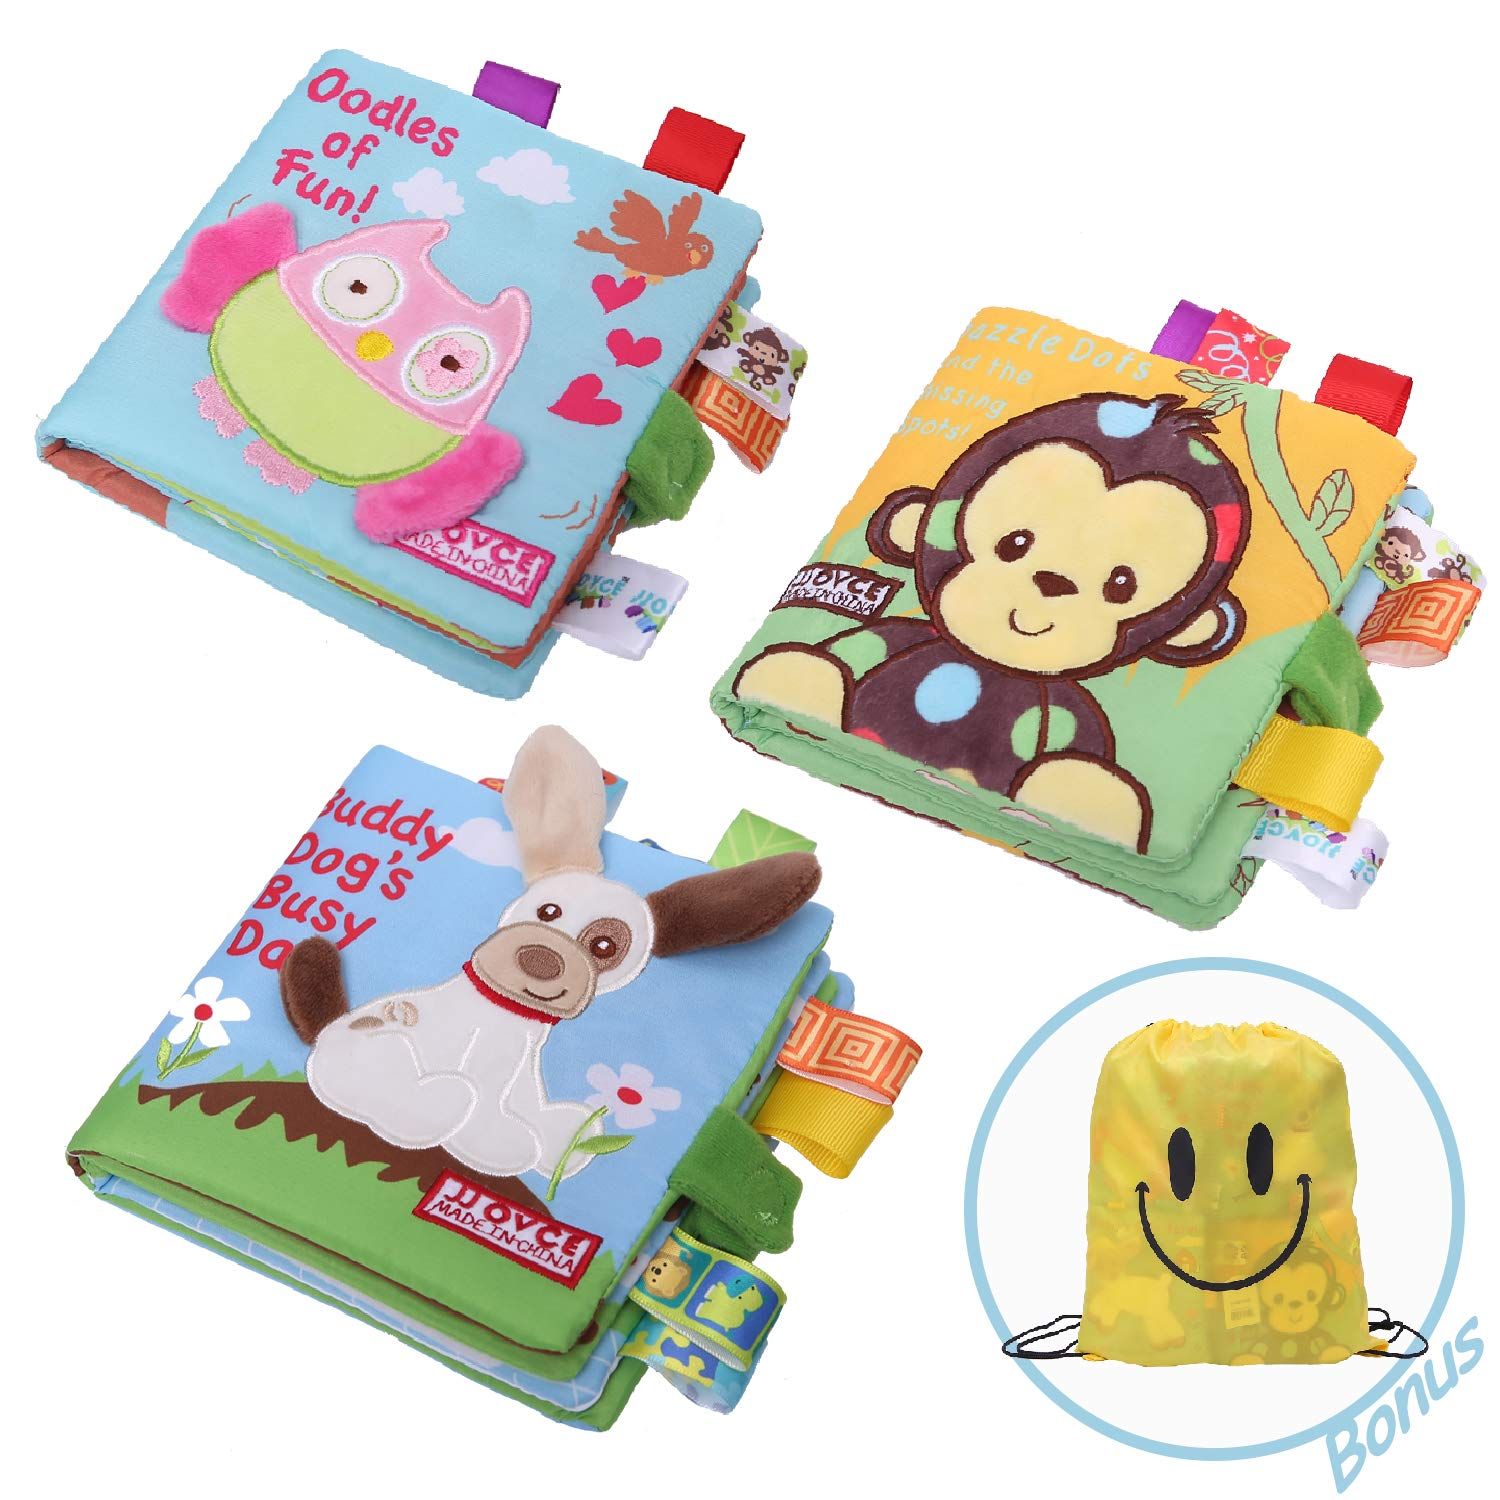 JCSHHUBS Soft Baby Cloth Activity Crinkle Book Set Fabric Non-Toxic Early Education Toys Shower Gifts for Boy & Girl Toddler, Infants, Kids (3 Pack)